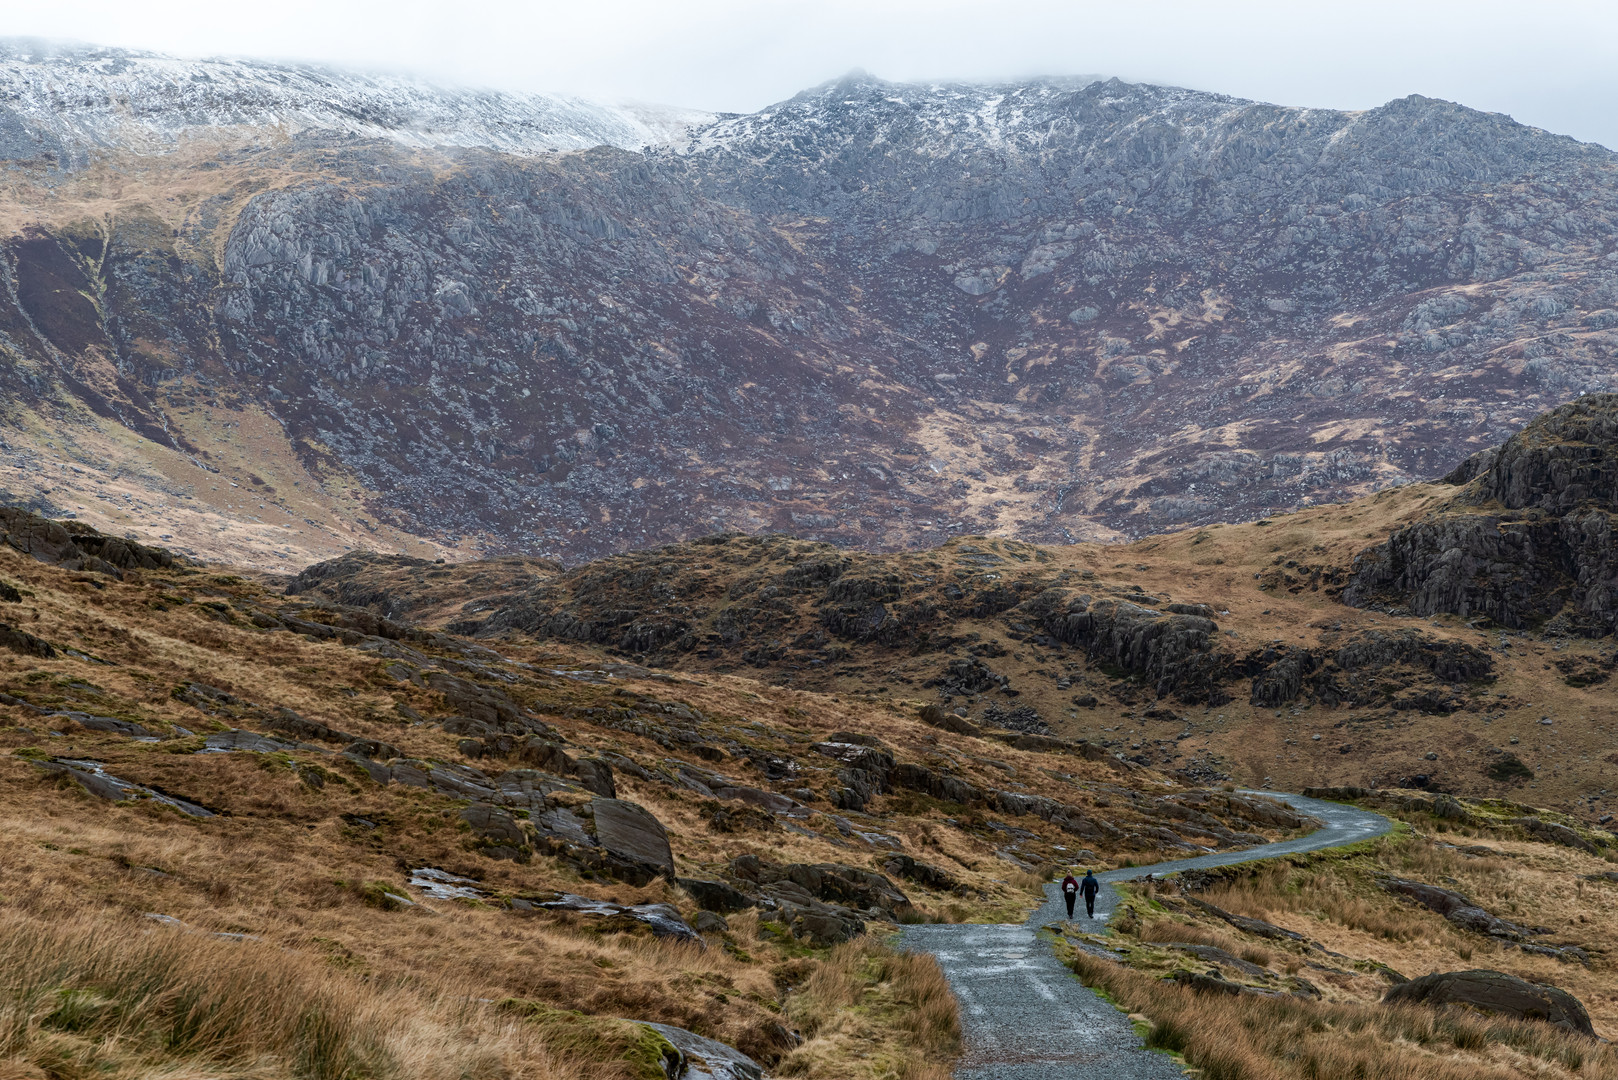 Looking Down the Miner's Track at the Base of Snowdonia, Wales